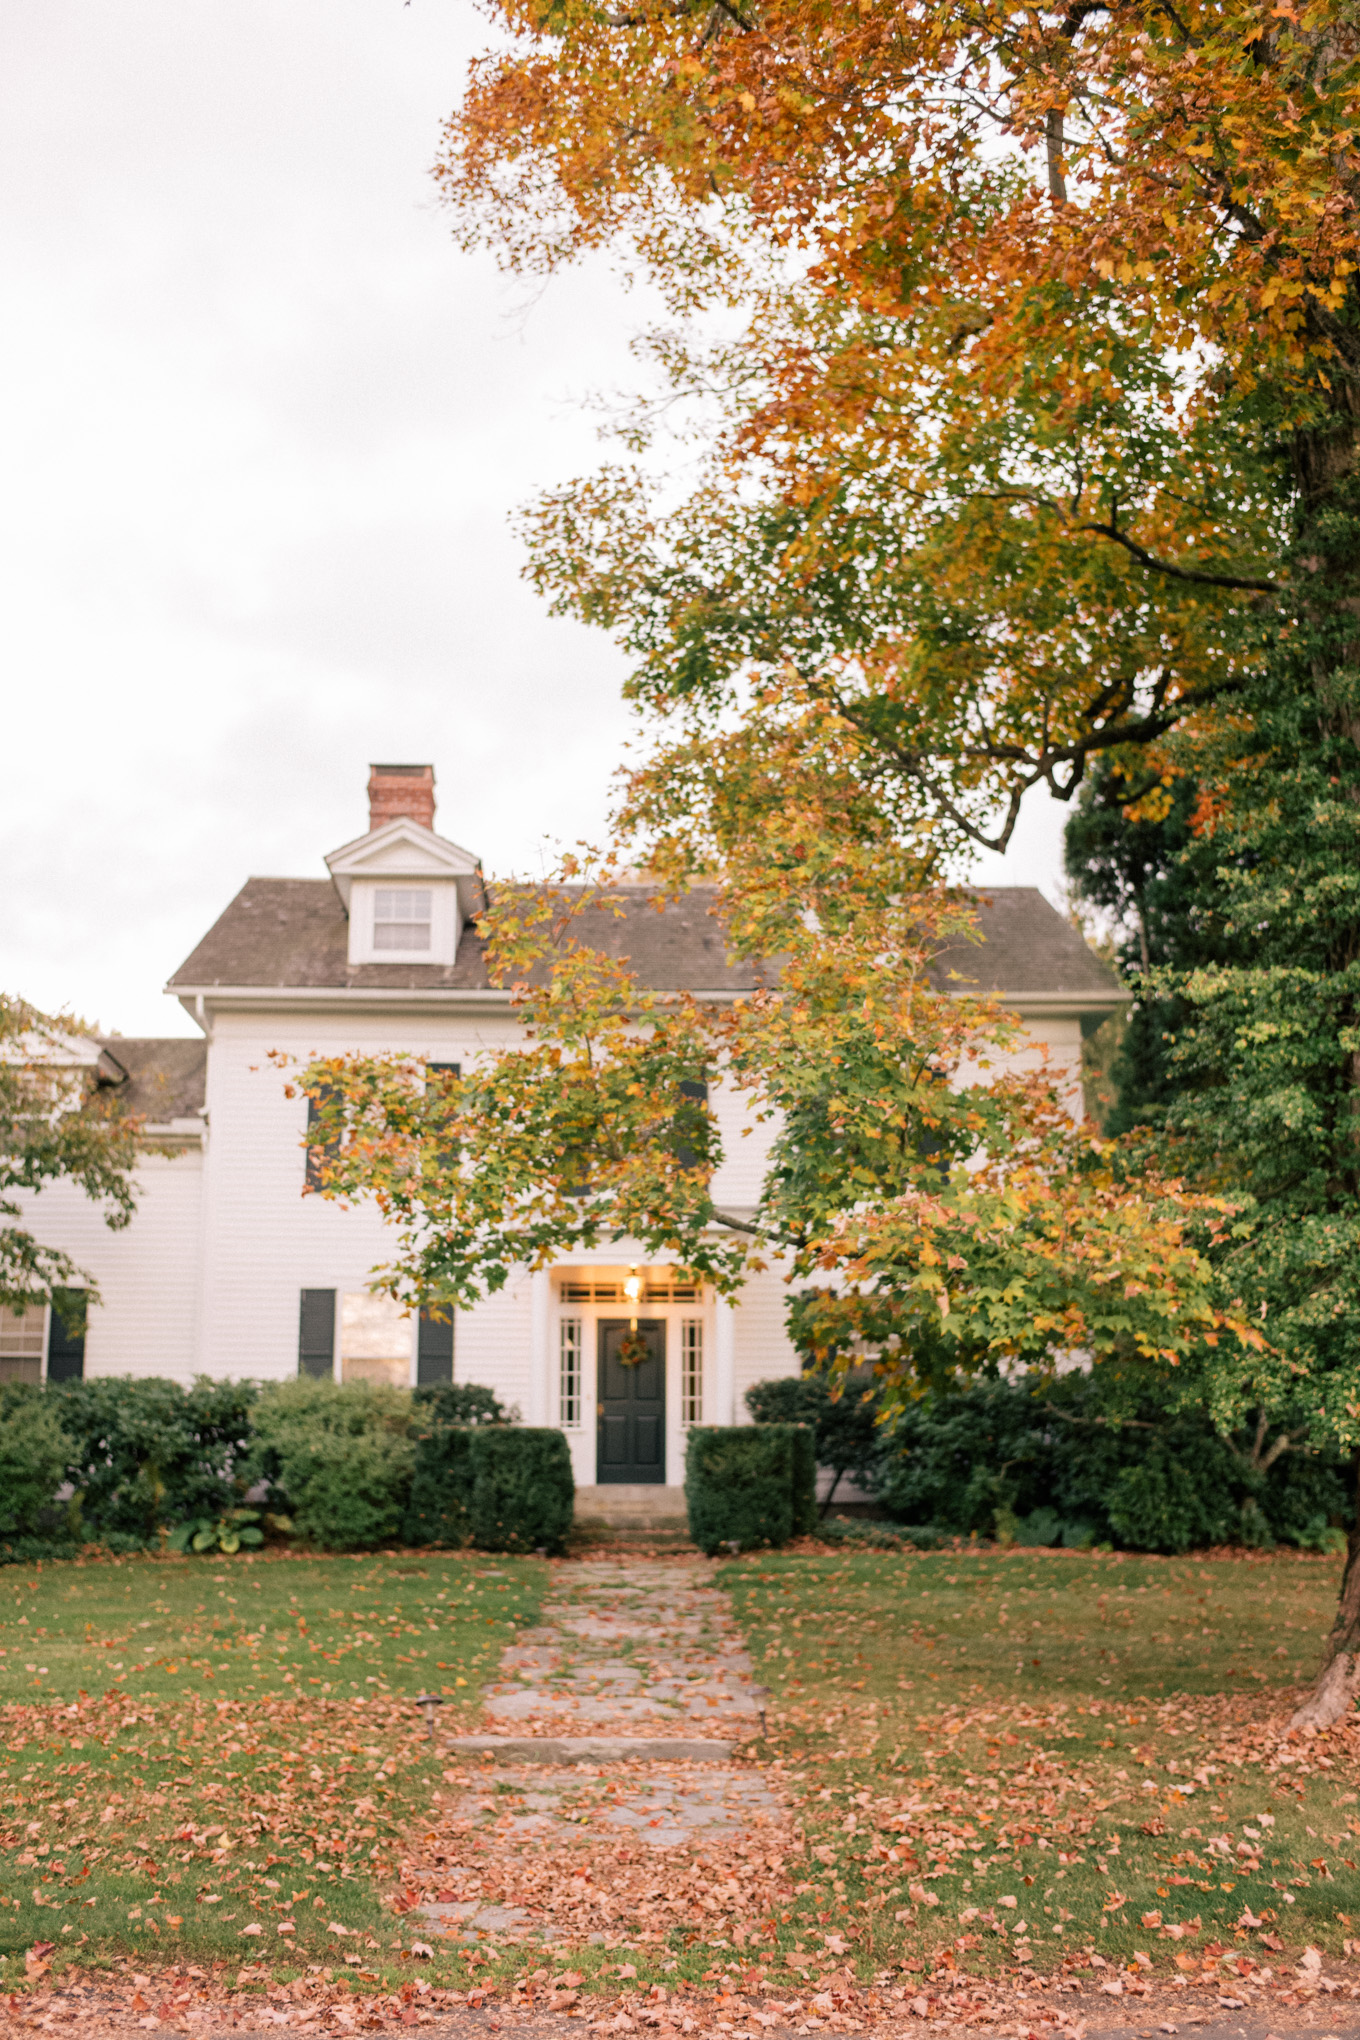 gmg-new-england-fall-style-1009660